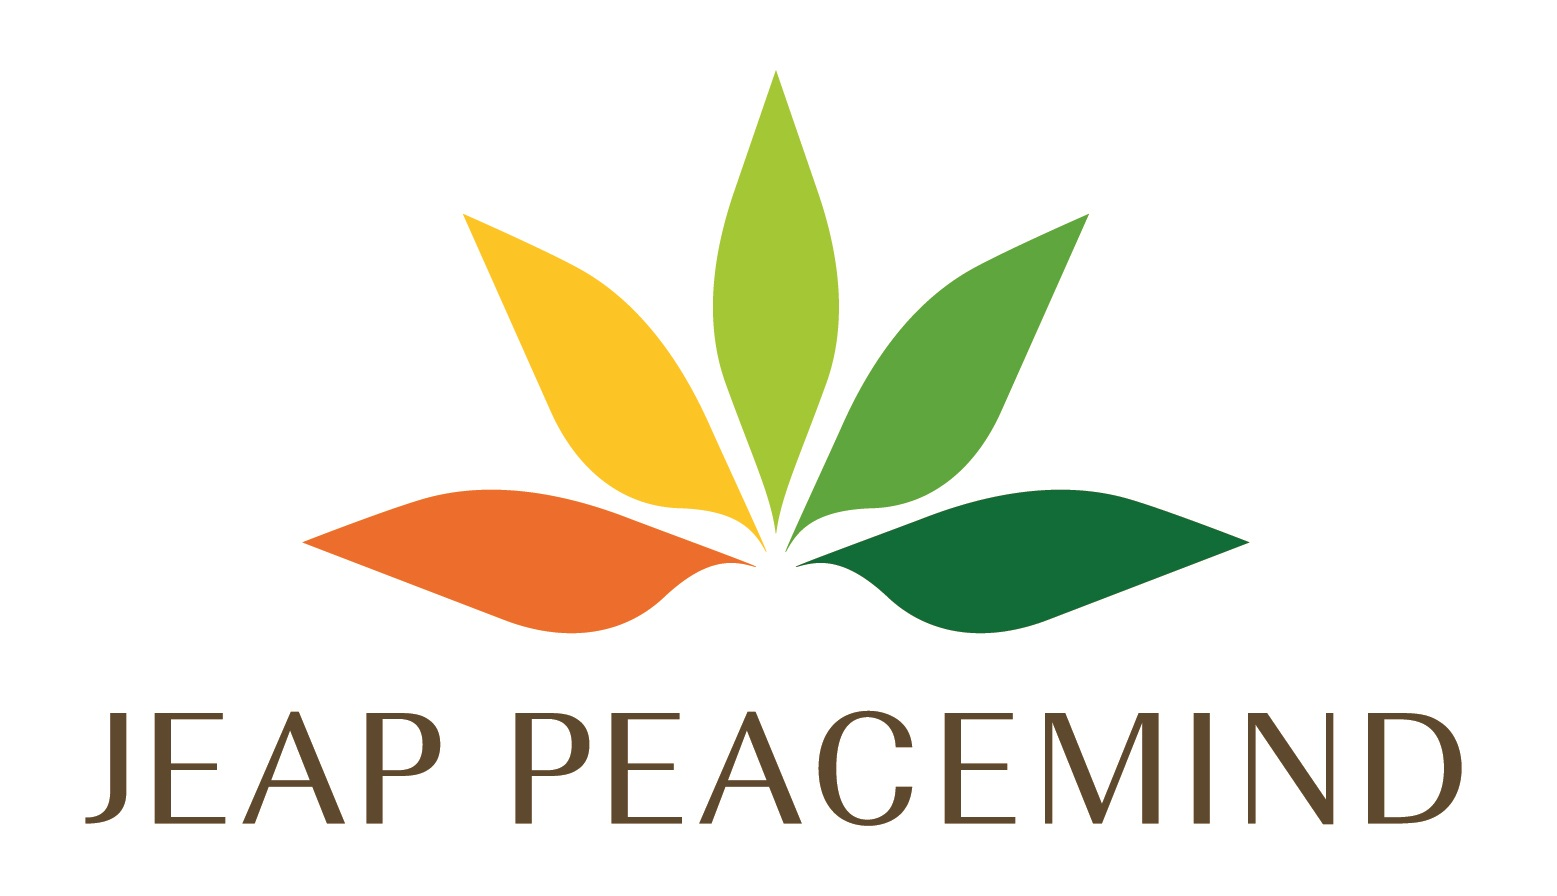 JEAP Peacemind logo